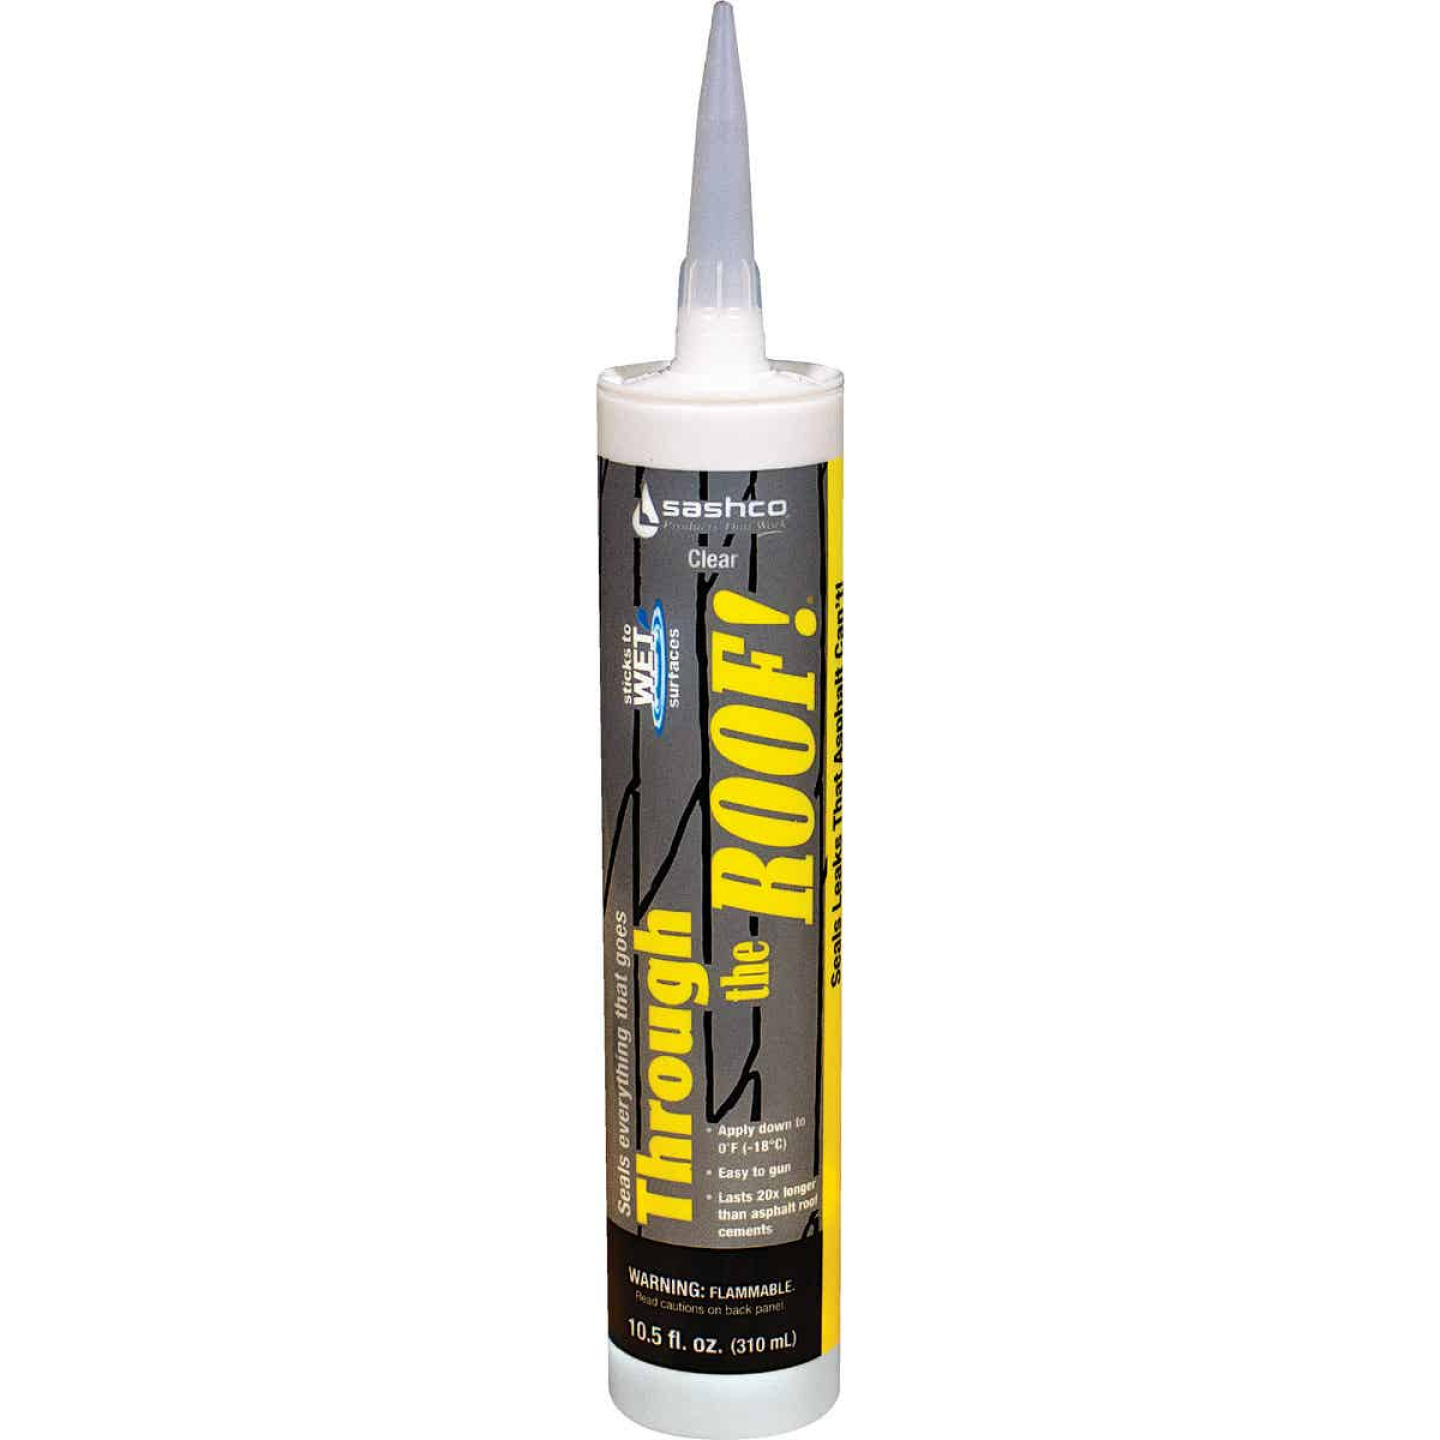 Through The Roof! 10.5 Oz. Cartridge VOC Cement & Patching Sealant Image 1